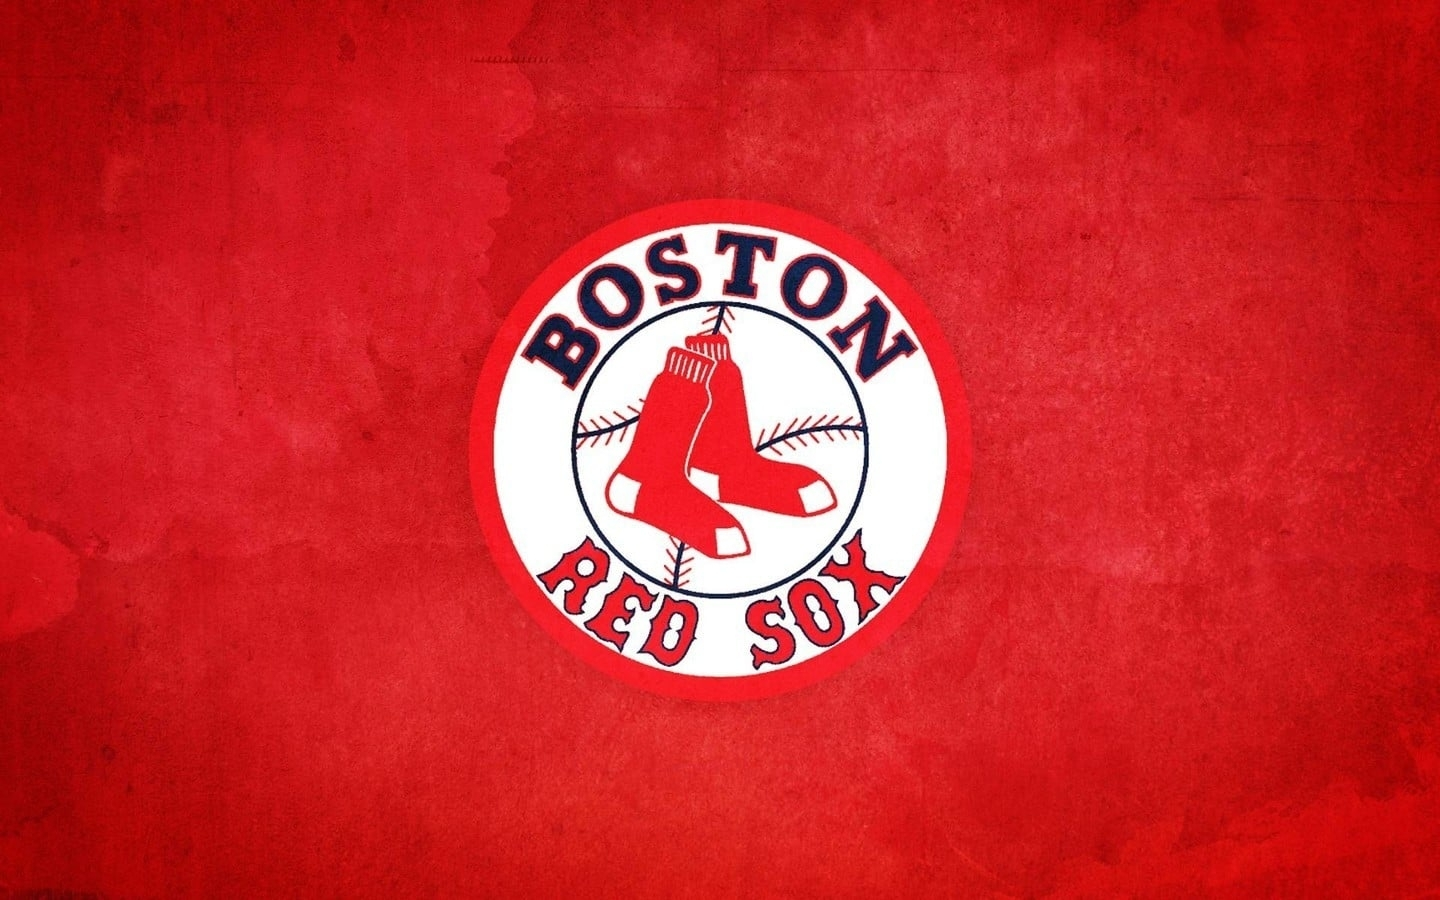 10 New Boston Red Sox Background FULL HD 1920×1080 For PC Background